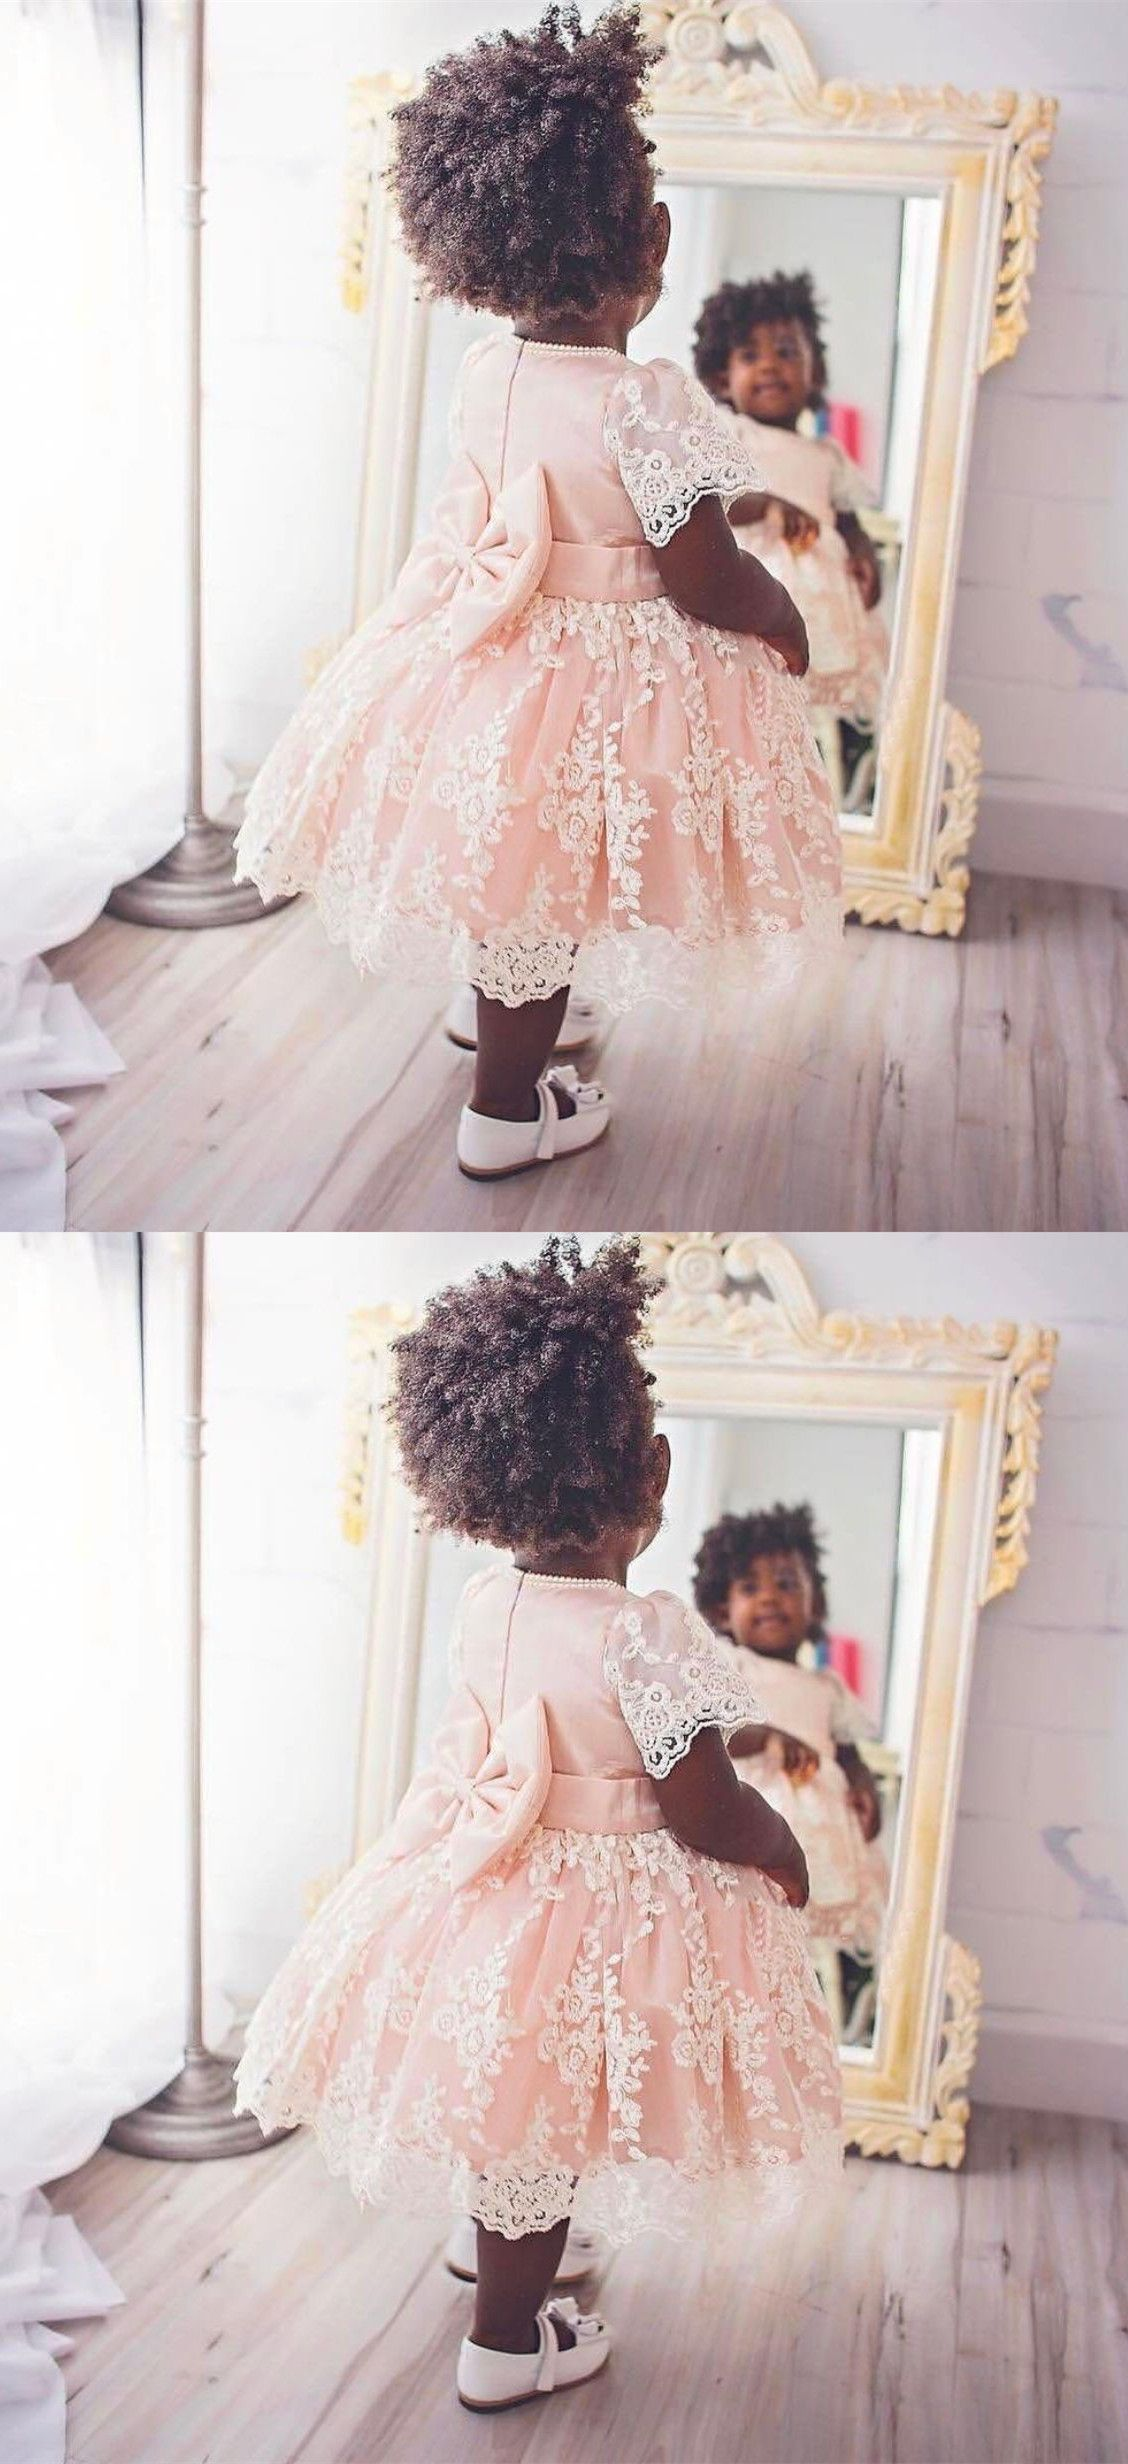 Ball gown round neck pink lace flower girl dress with bowknot cute